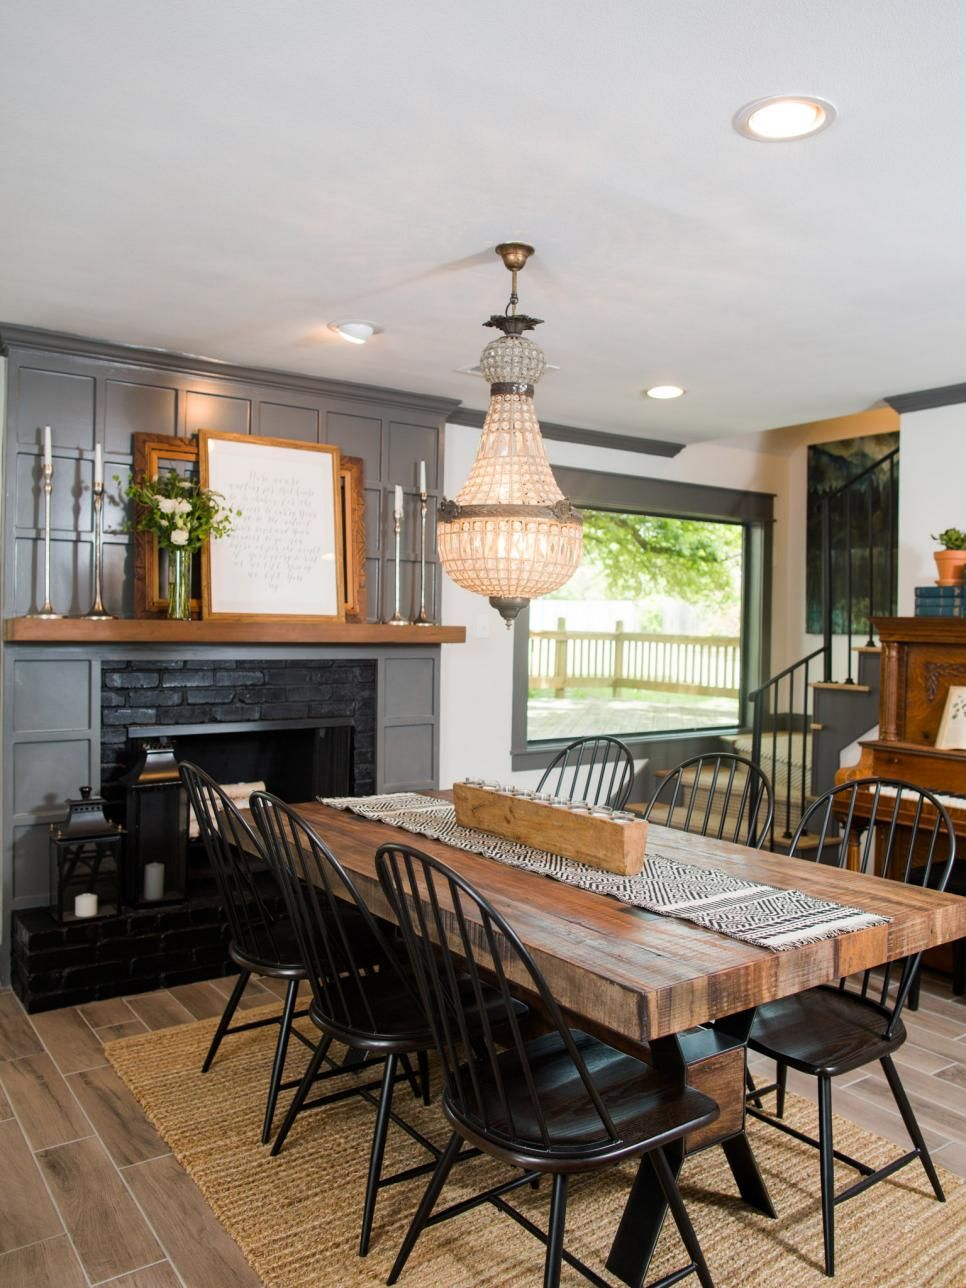 Dining Room Paint Ideas Pinterest: Fixer Upper: Old-World Charm For Newlyweds